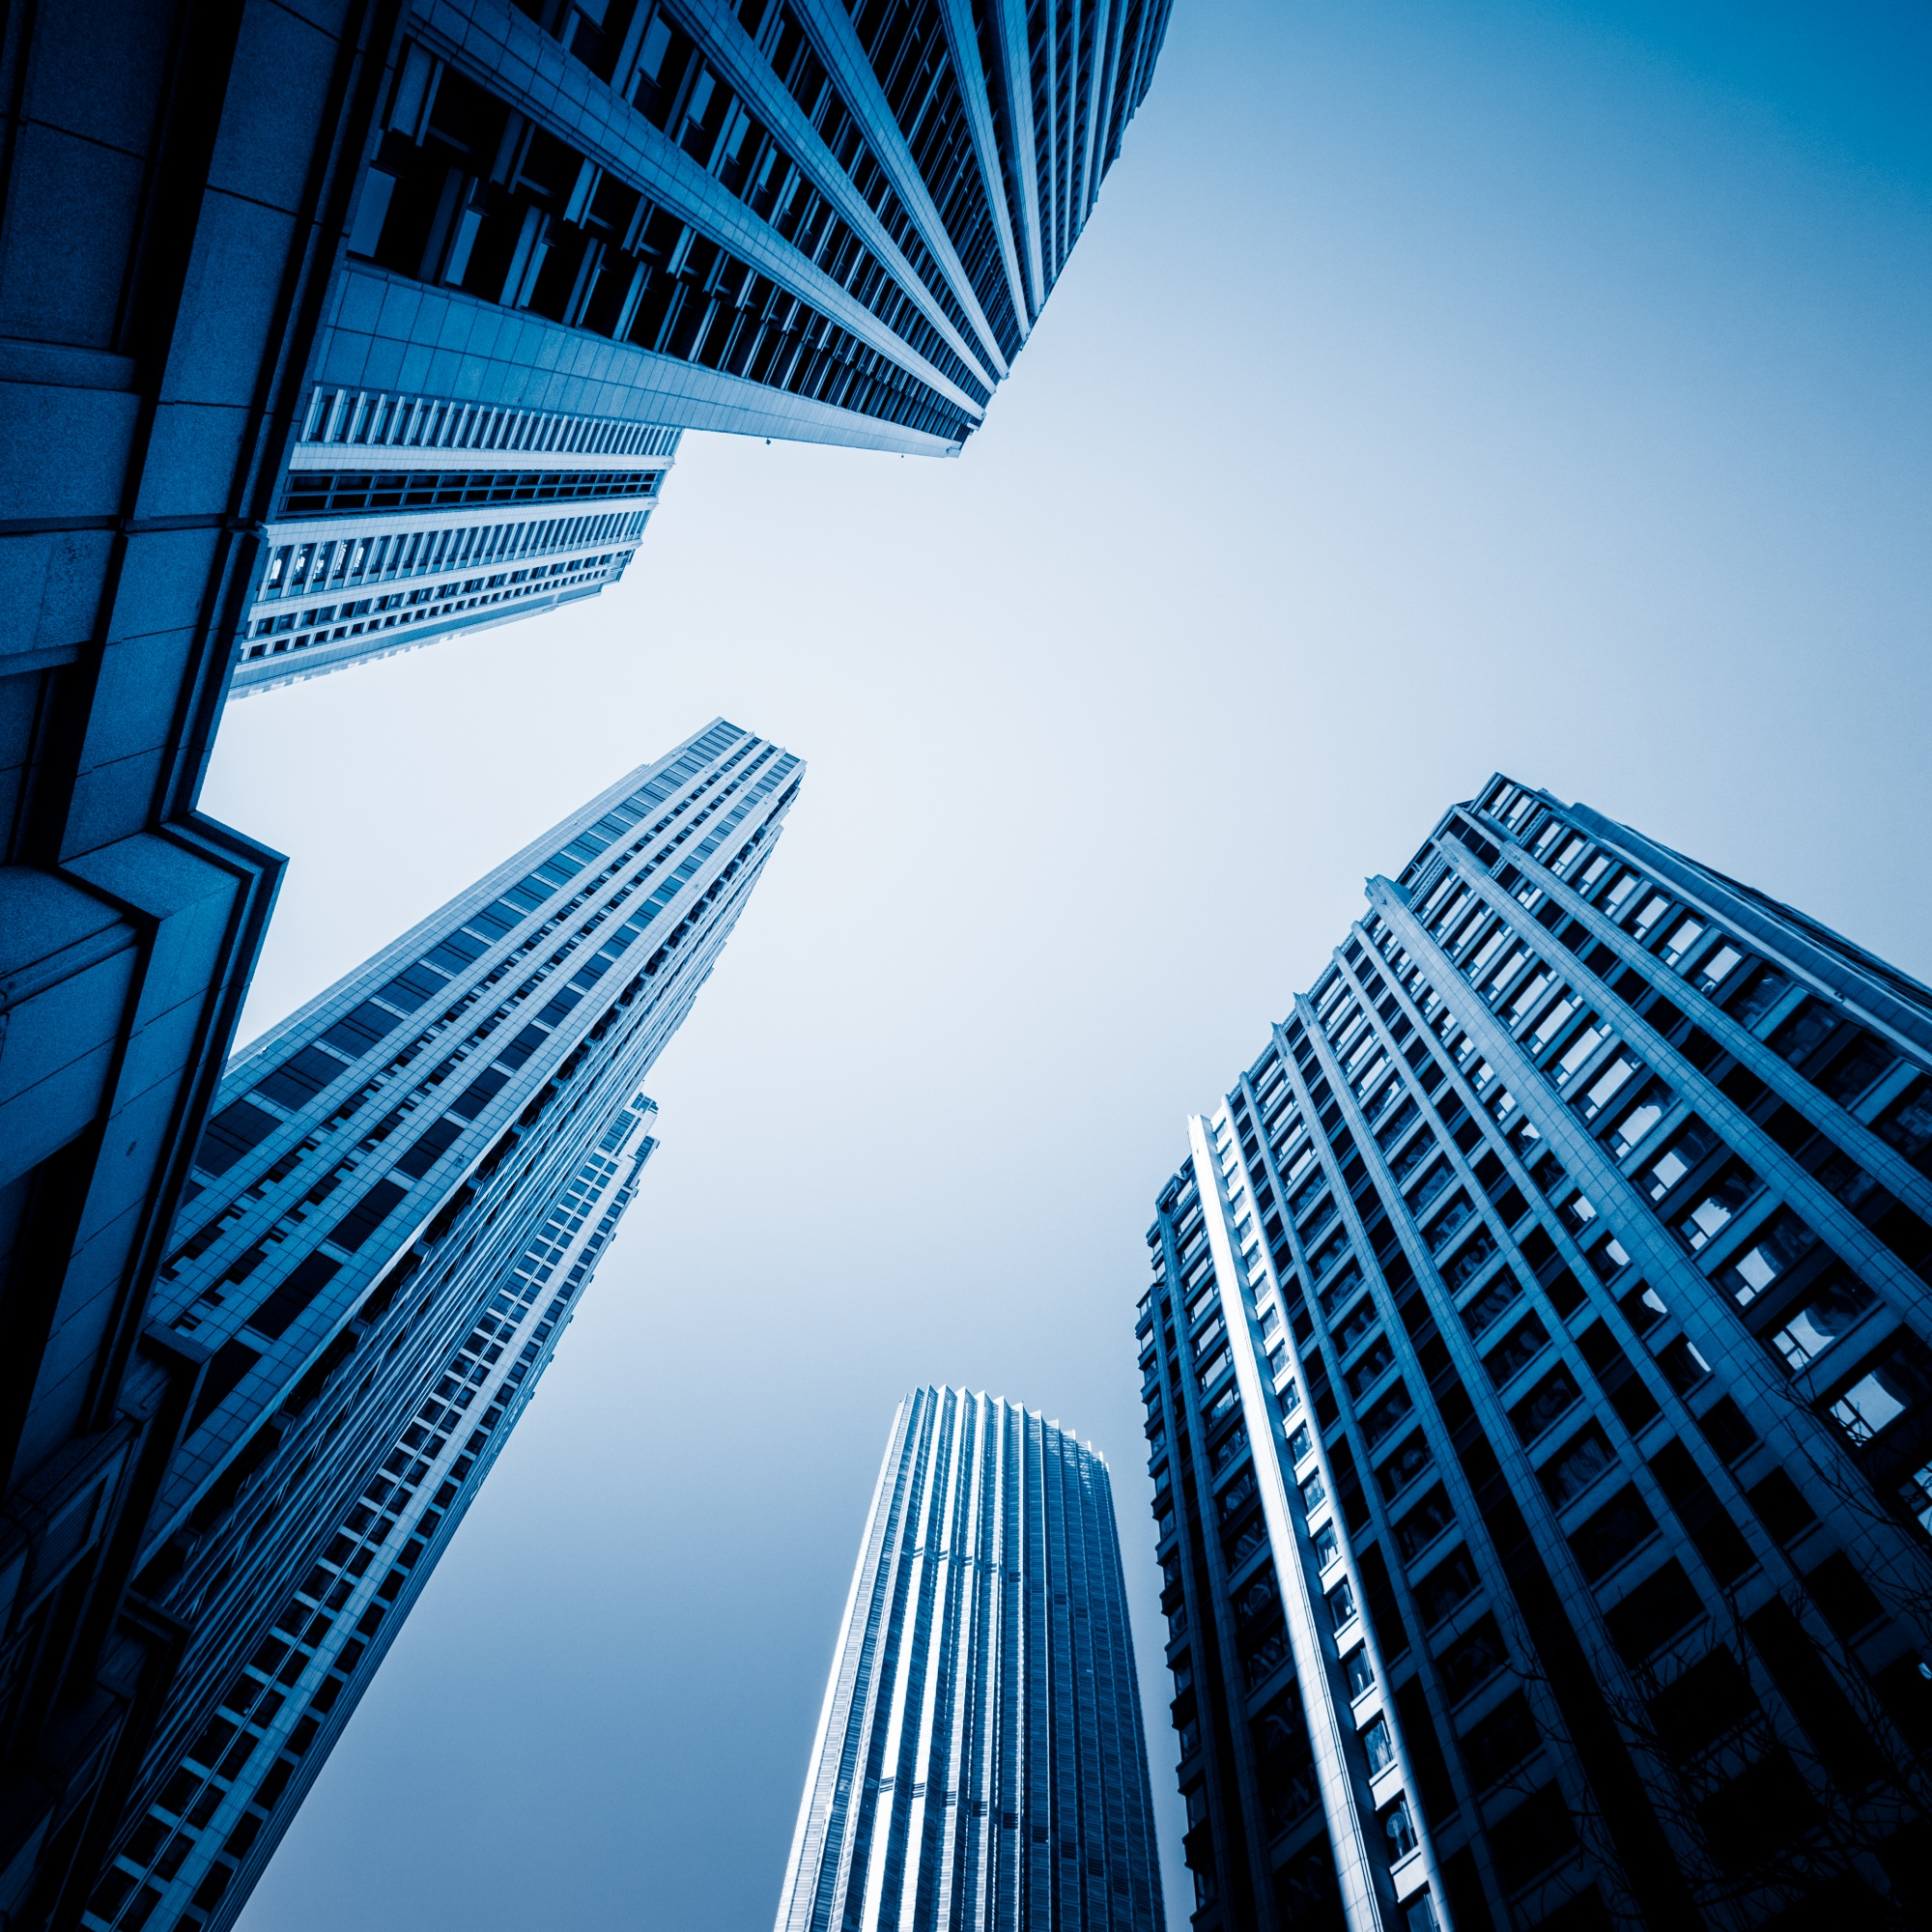 Skyscrapers from a low angle view